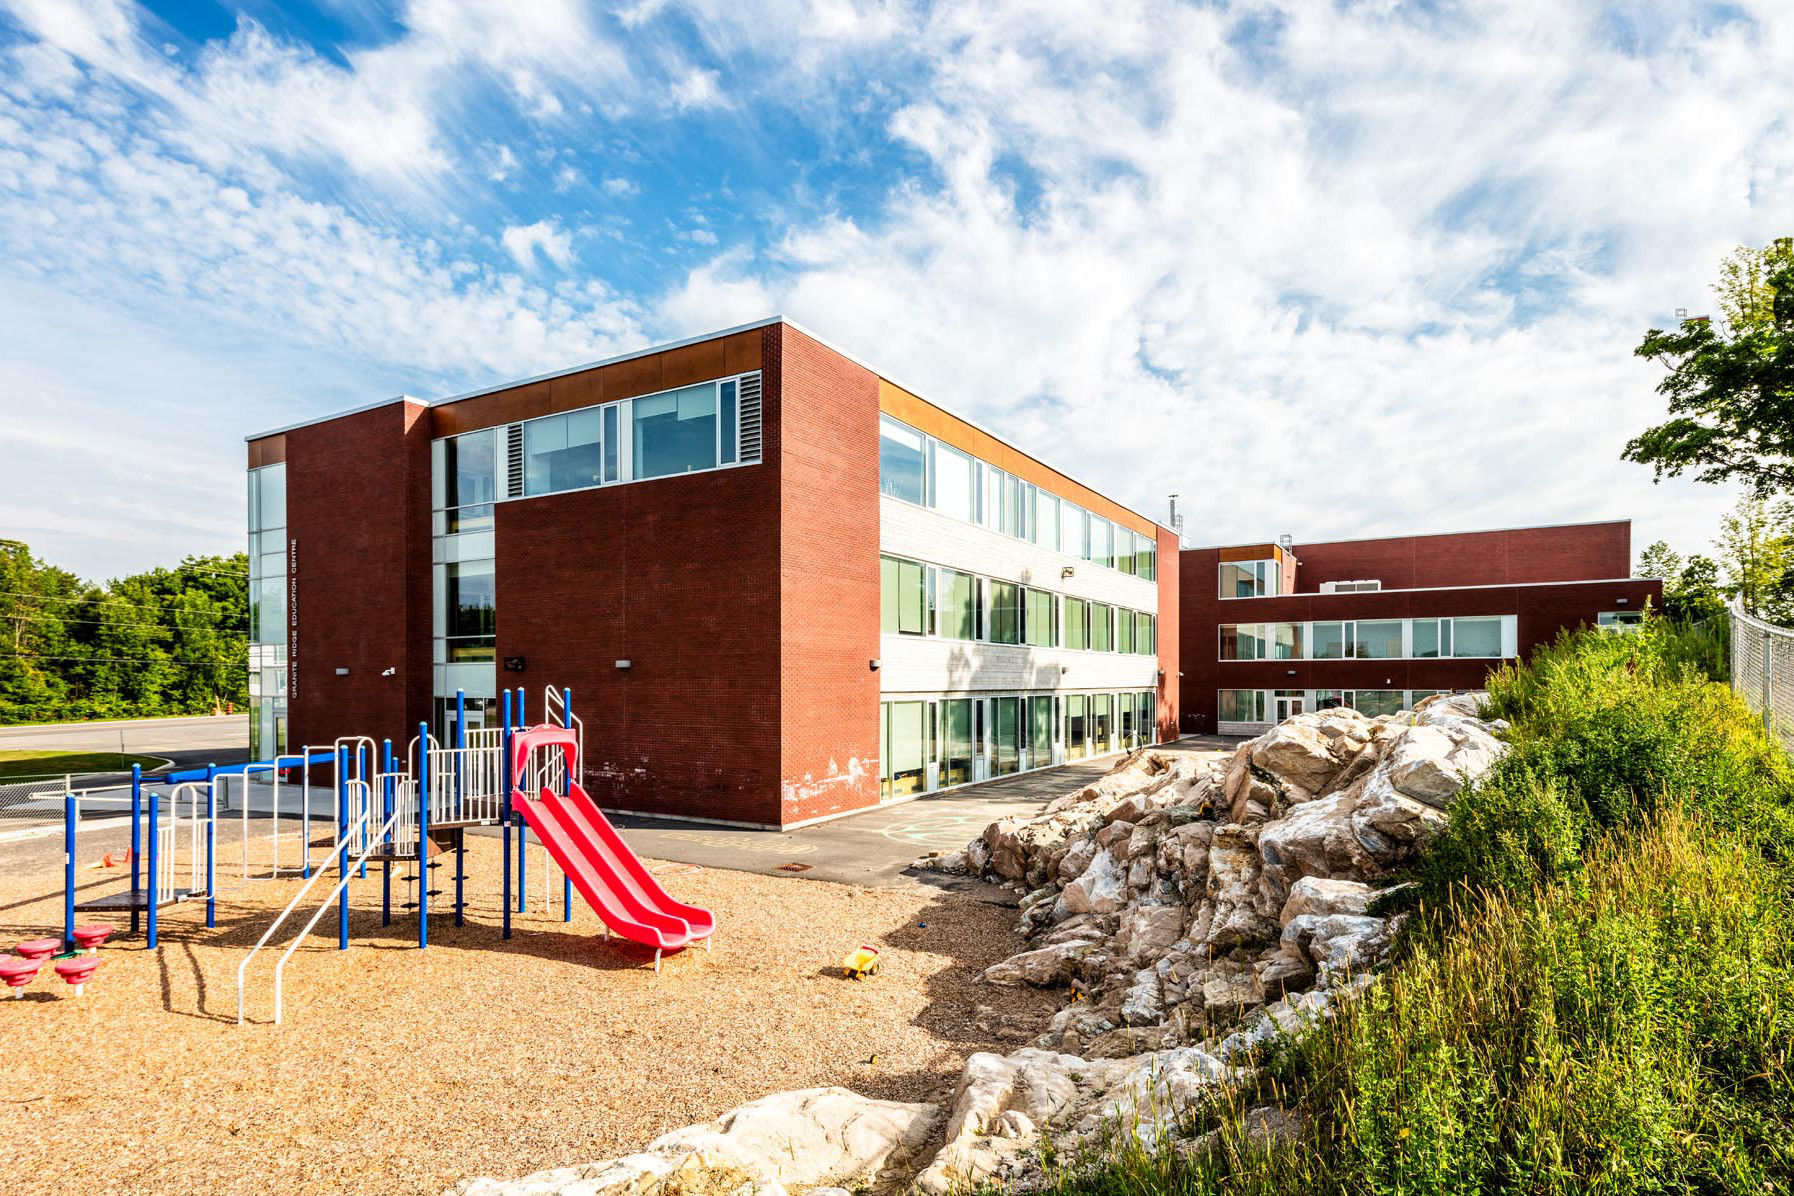 Three storey red brick school with glazed windows throughout with children's playground and natural rock barrier in foreground